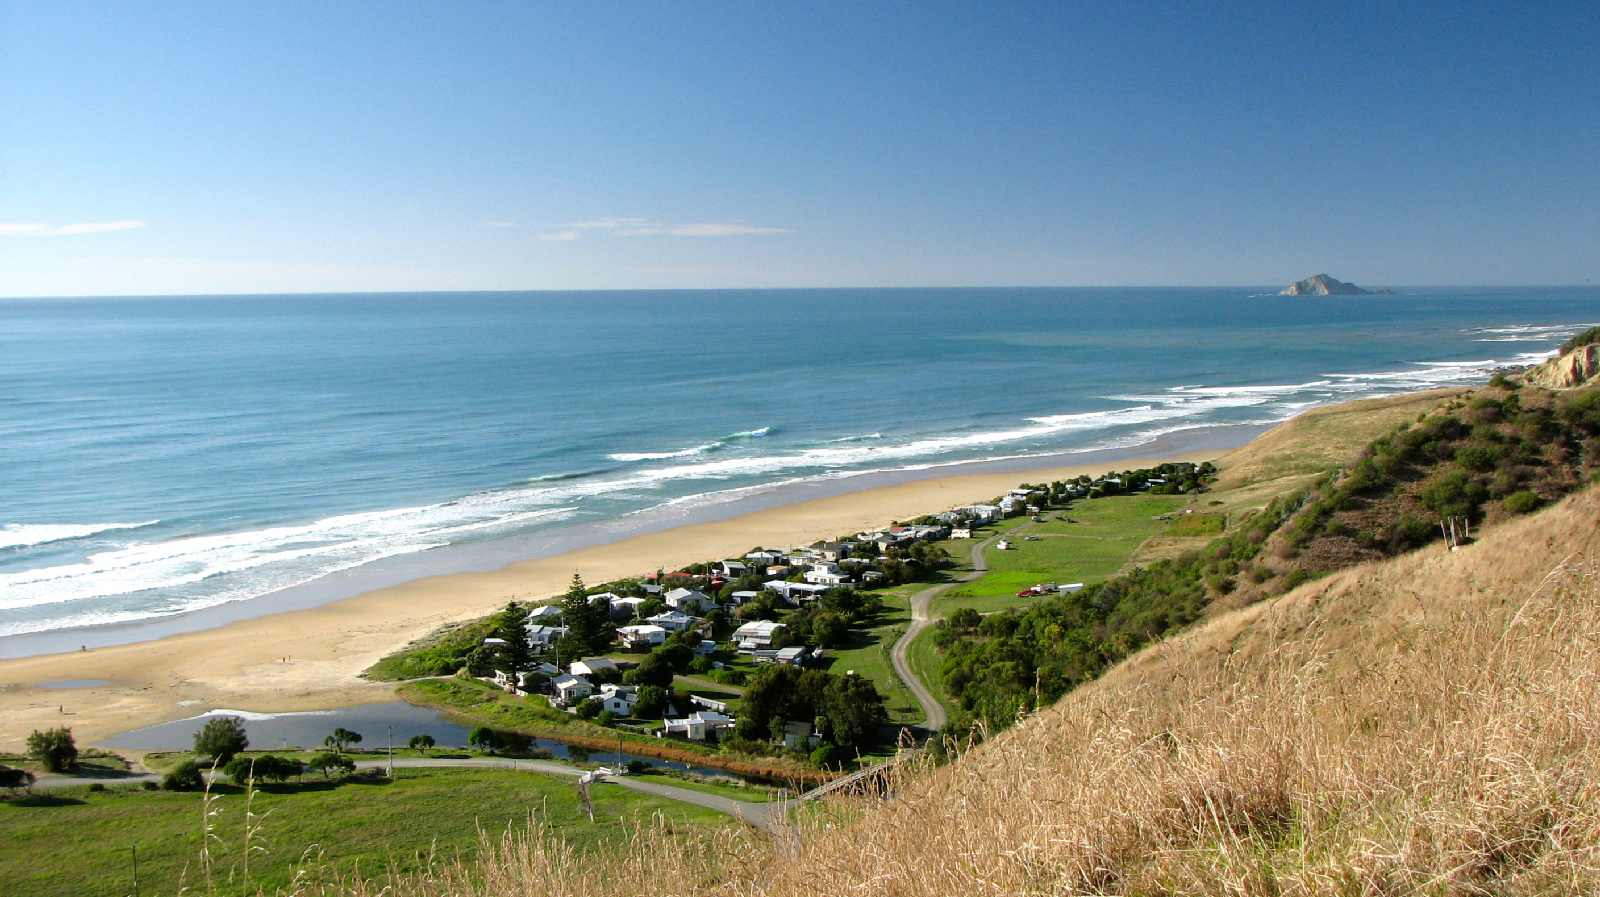 Ocean Beach - Hawkes Bay beaches